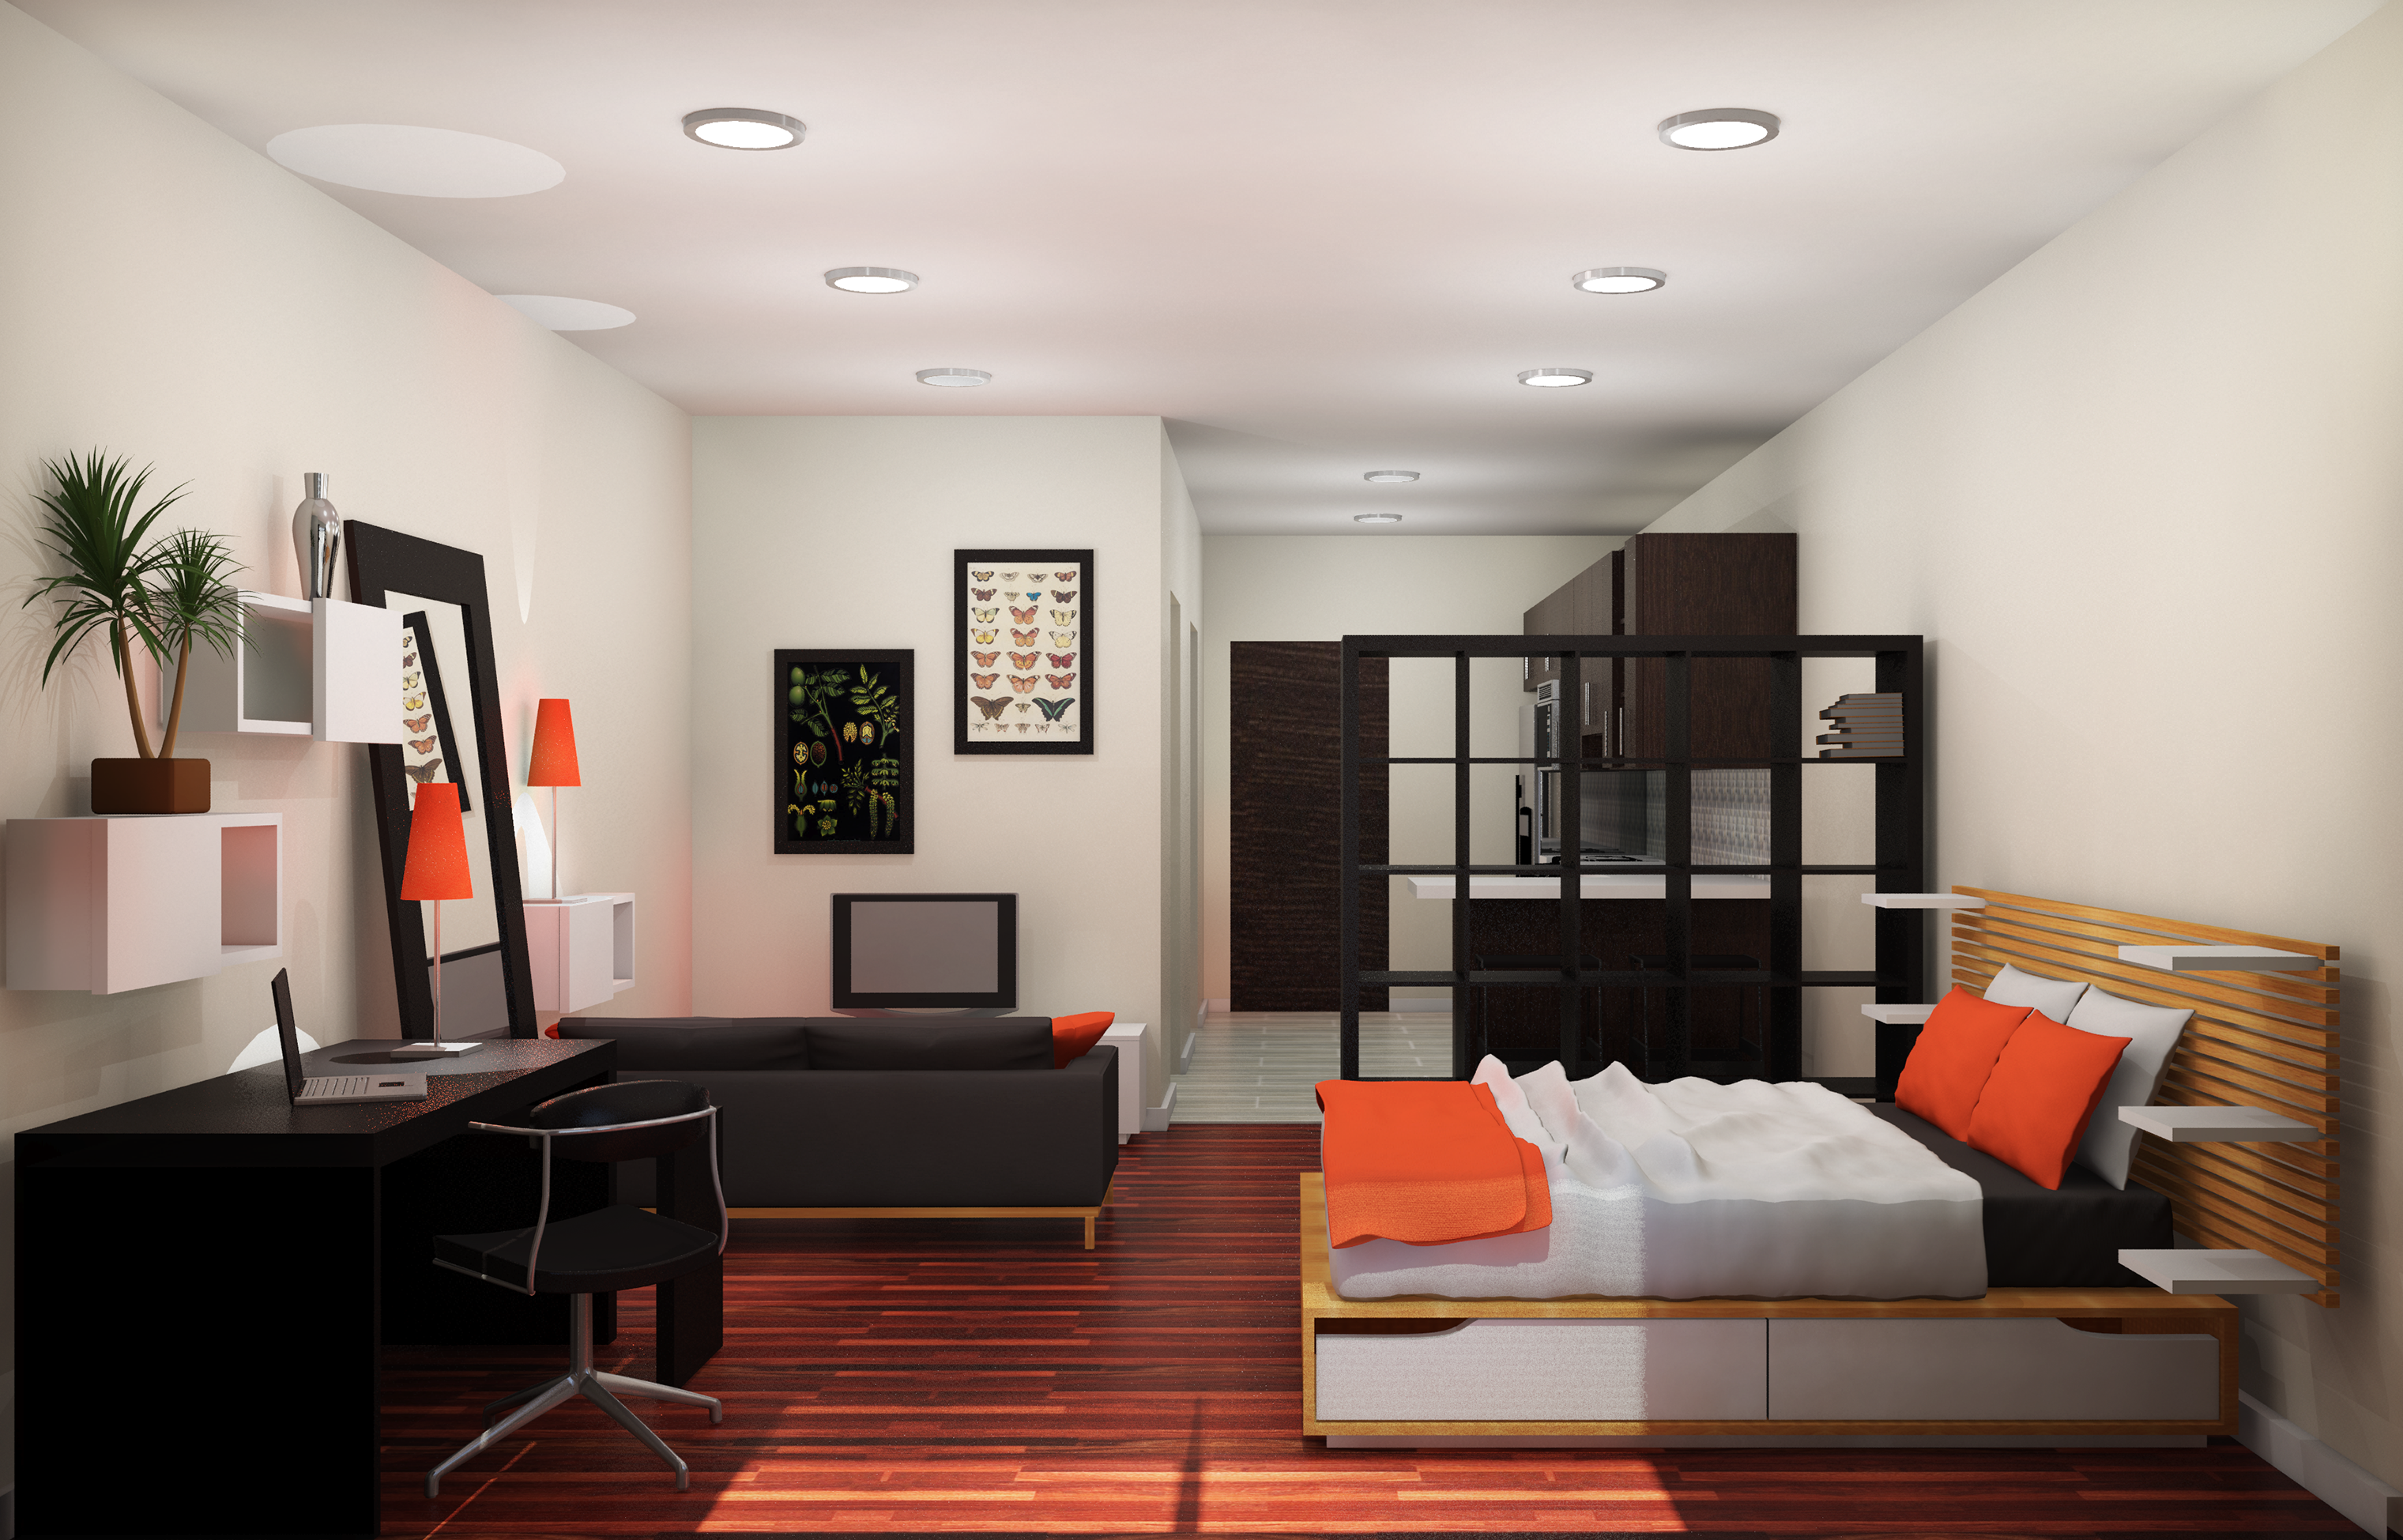 Studio Room Design Ideas mini studio apartment ideas small studio apartment. design ideas